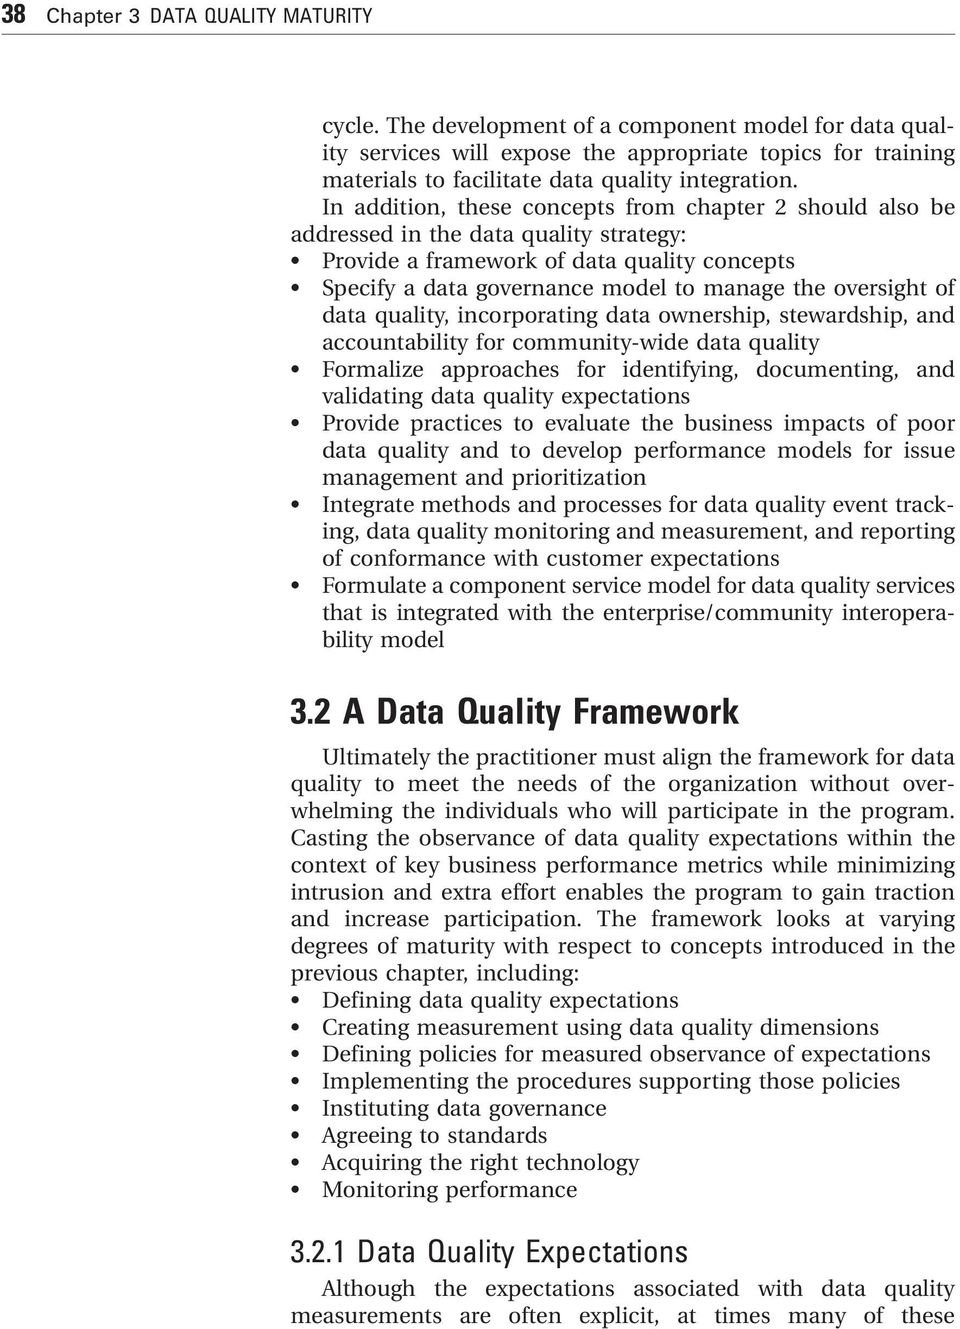 In addition, these concepts from chapter 2 should also be addressed in the data quality strategy: Provide a framework of data quality concepts Specify a data governance model to manage the oversight